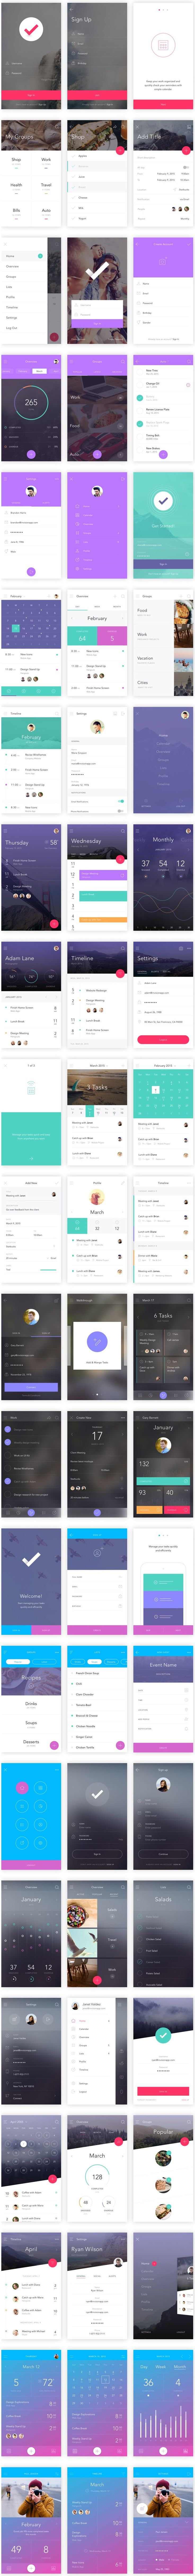 DO: Free App UI Kit for Photoshop & Sketch